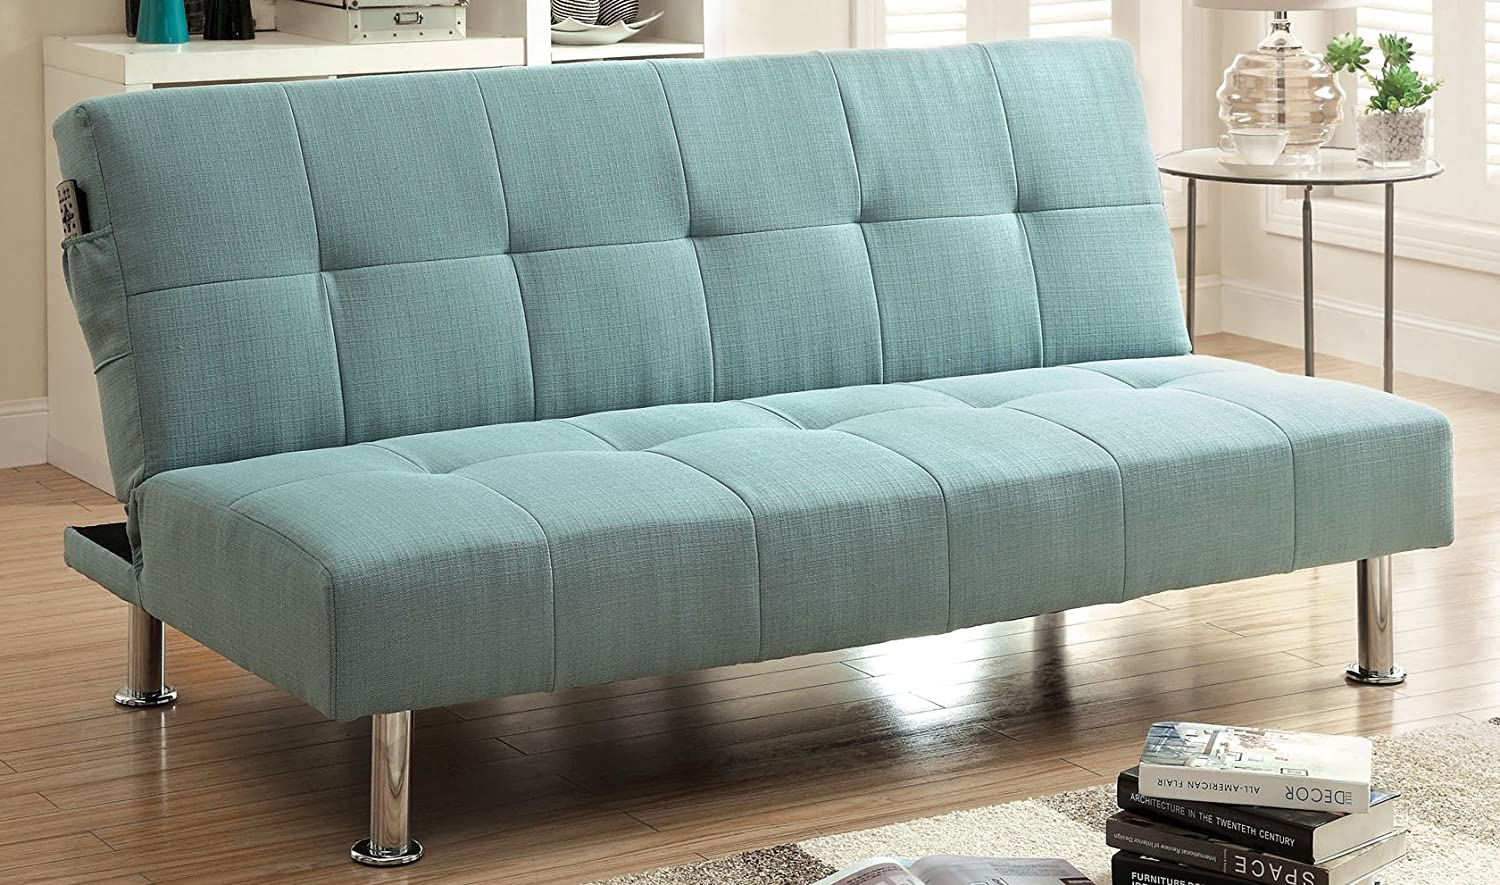 Furniture of America Contemporary Benjie Futon Sofa - Blue